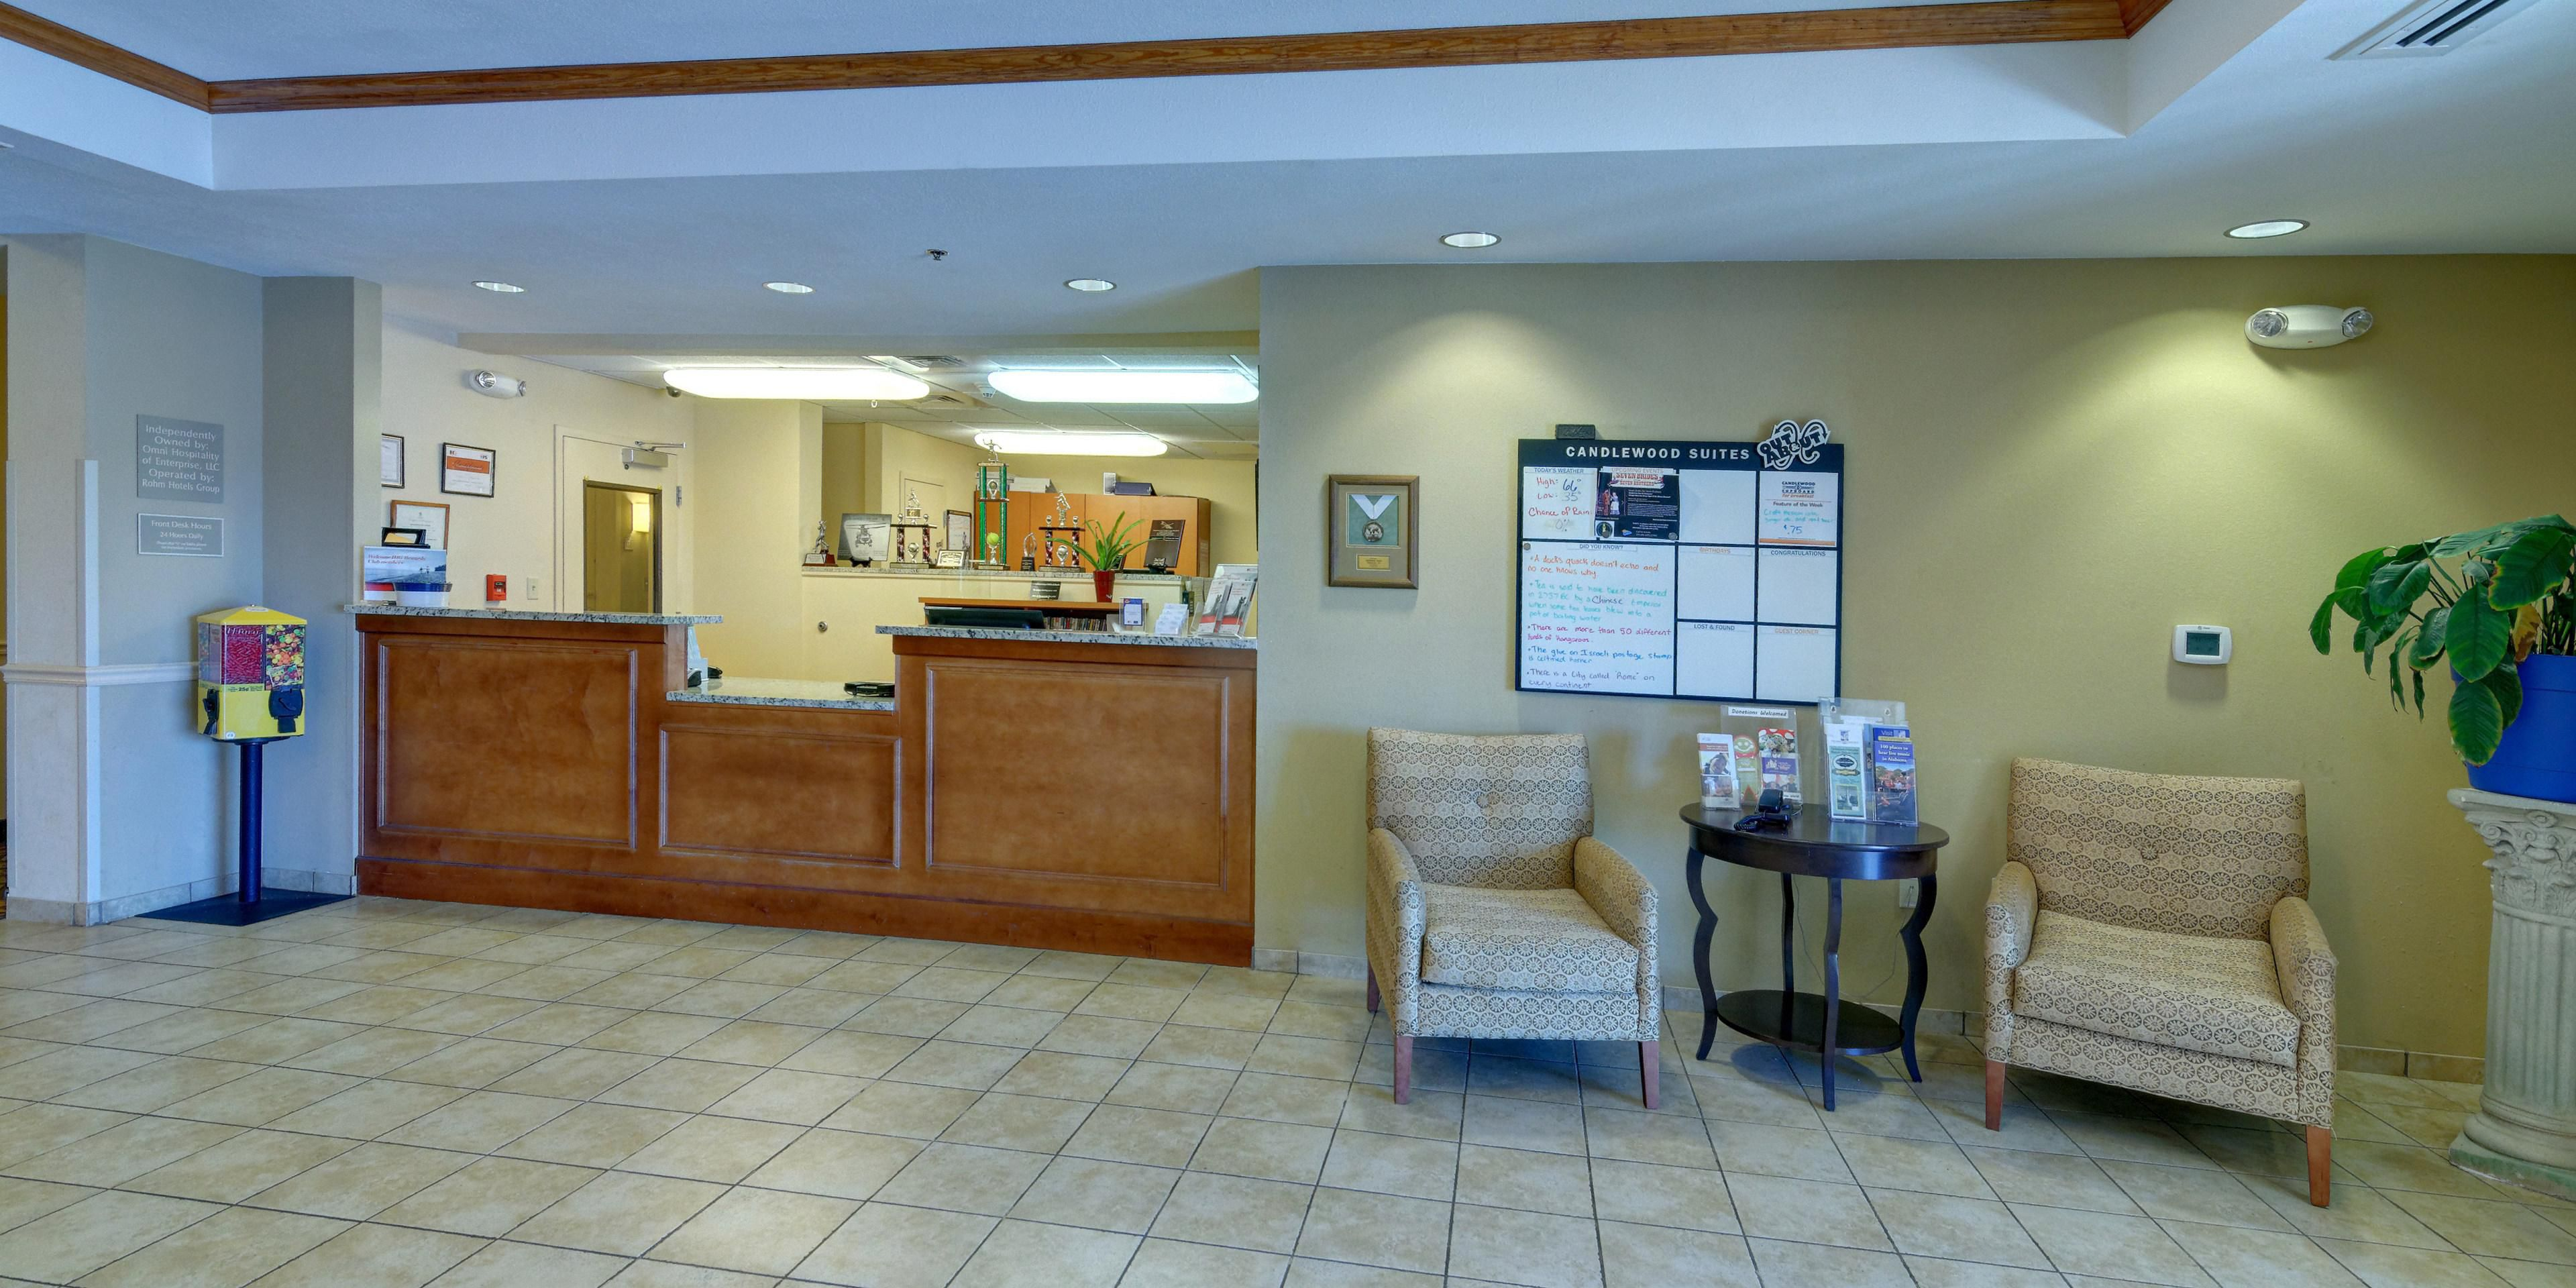 Enterprise Hotels: Candlewood Suites Enterprise   Extended Stay Hotel In  Enterprise, Alabama